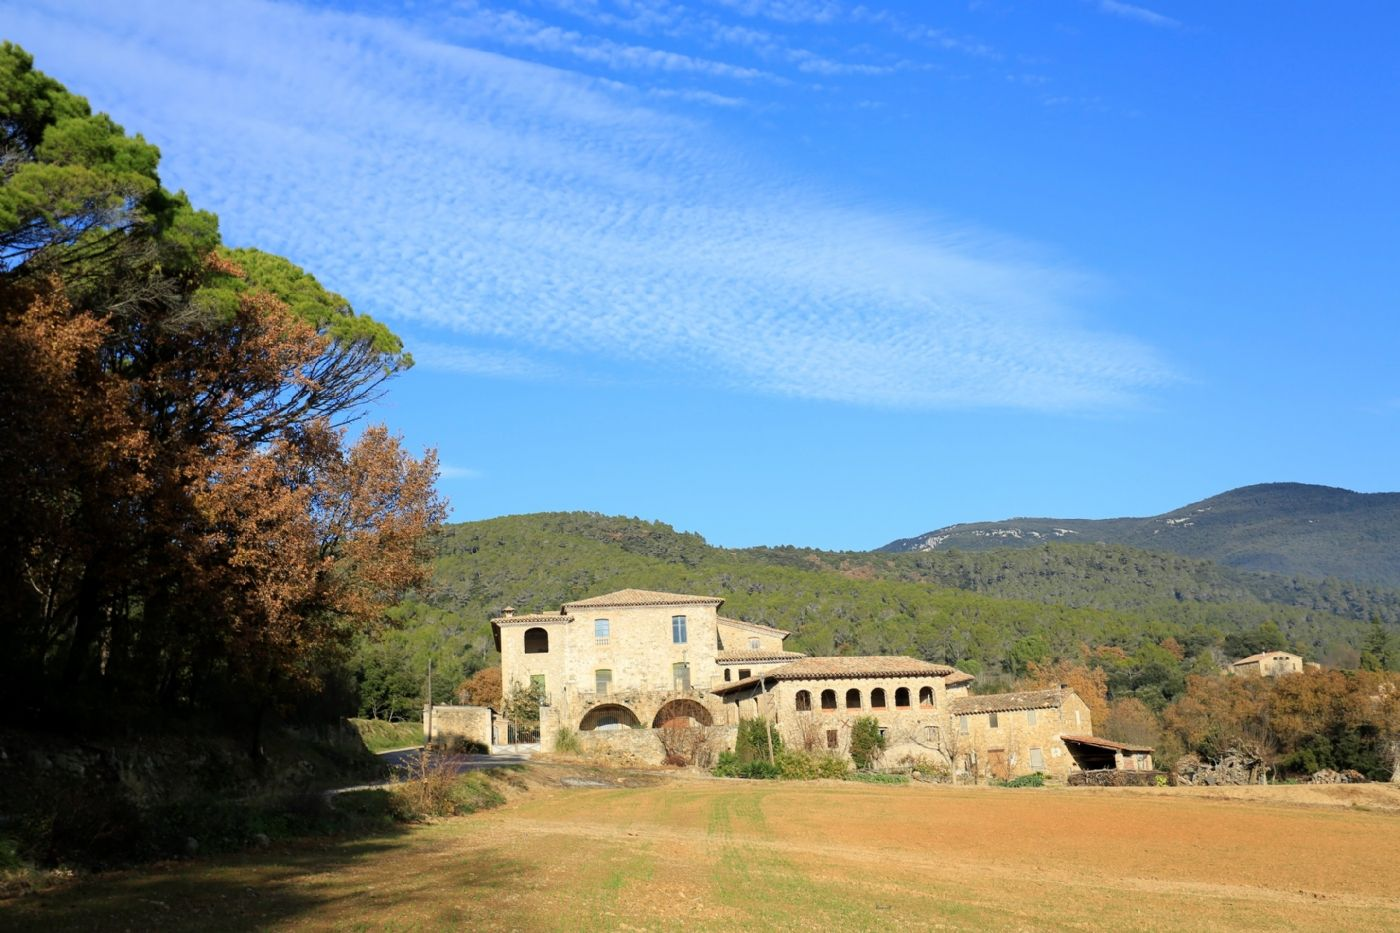 Country house in Afueras, s/n. Casa pairal y masoveria